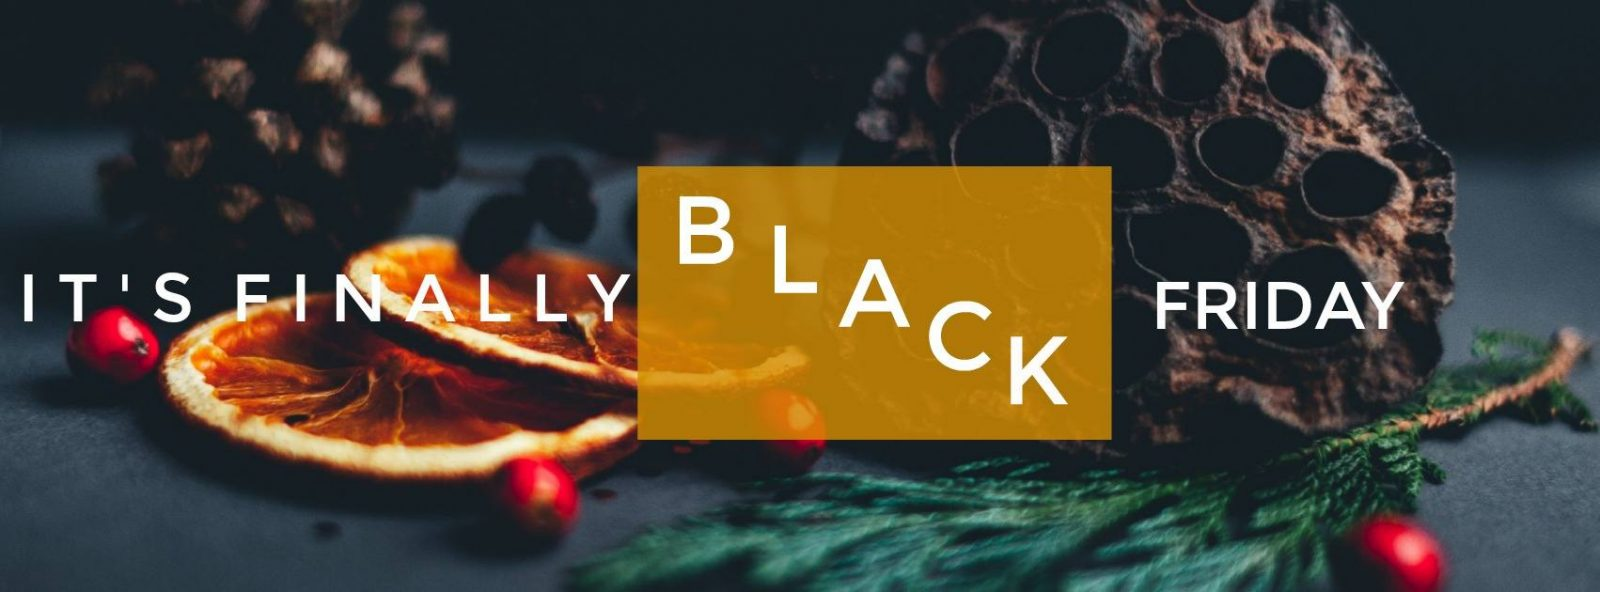 BLACK FRIDAY: Les bons plans de folie!